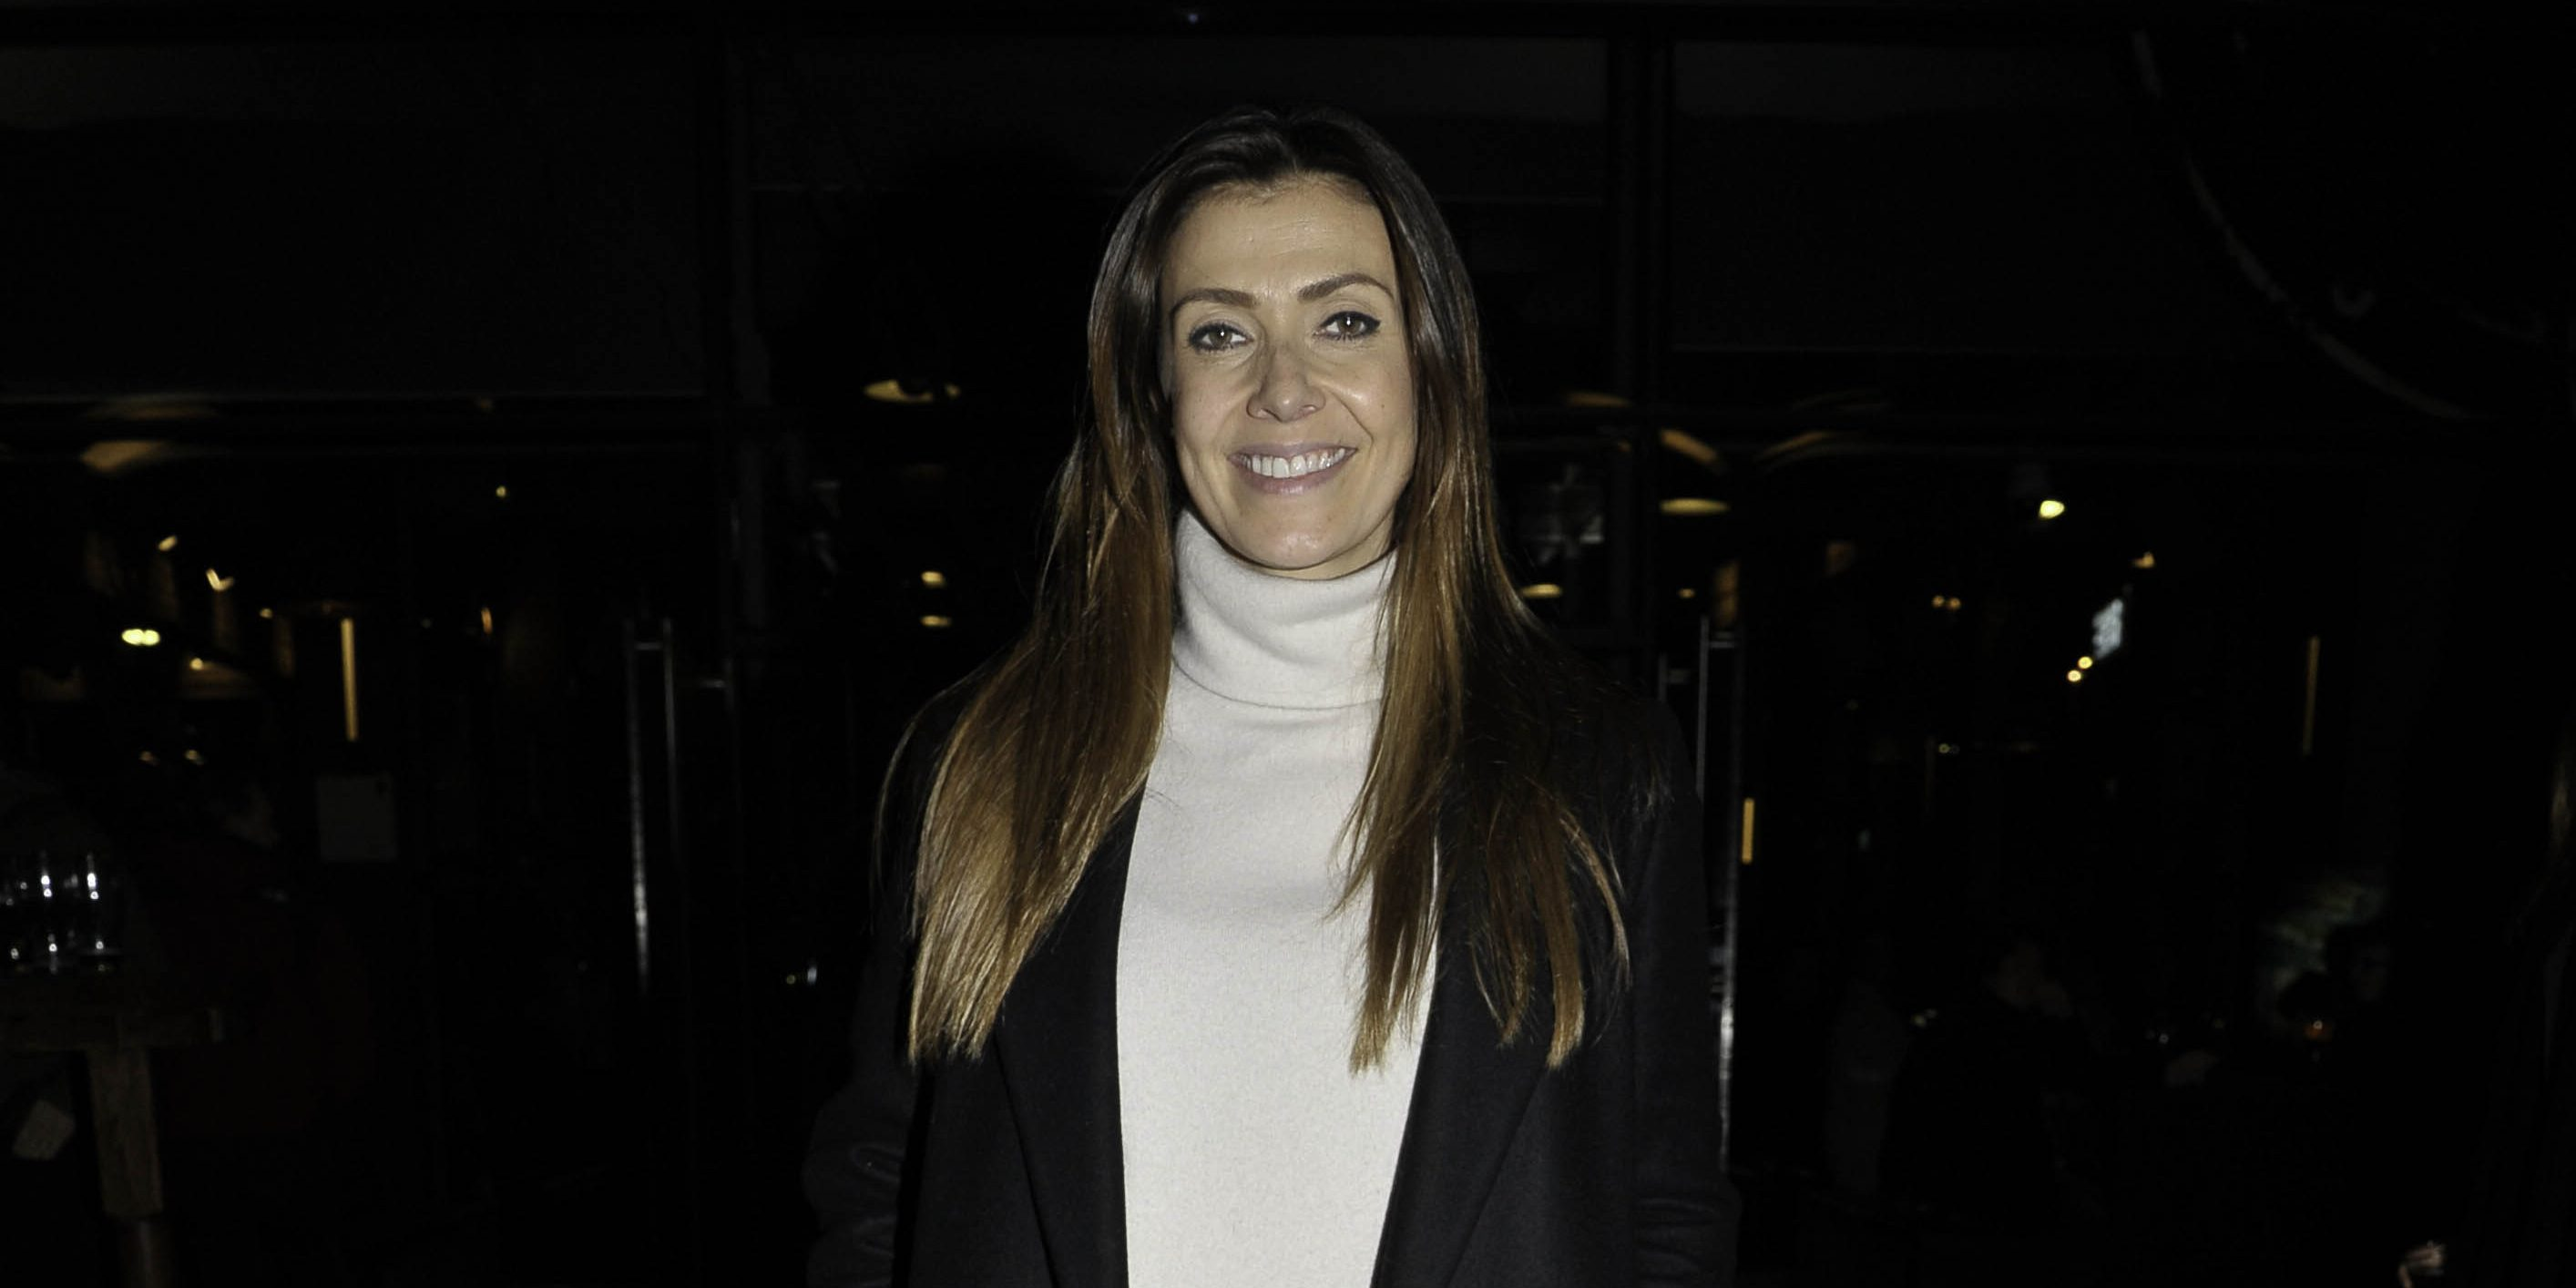 Corrie's Kym Marsh used to live in a damp house full of ants before finding fame